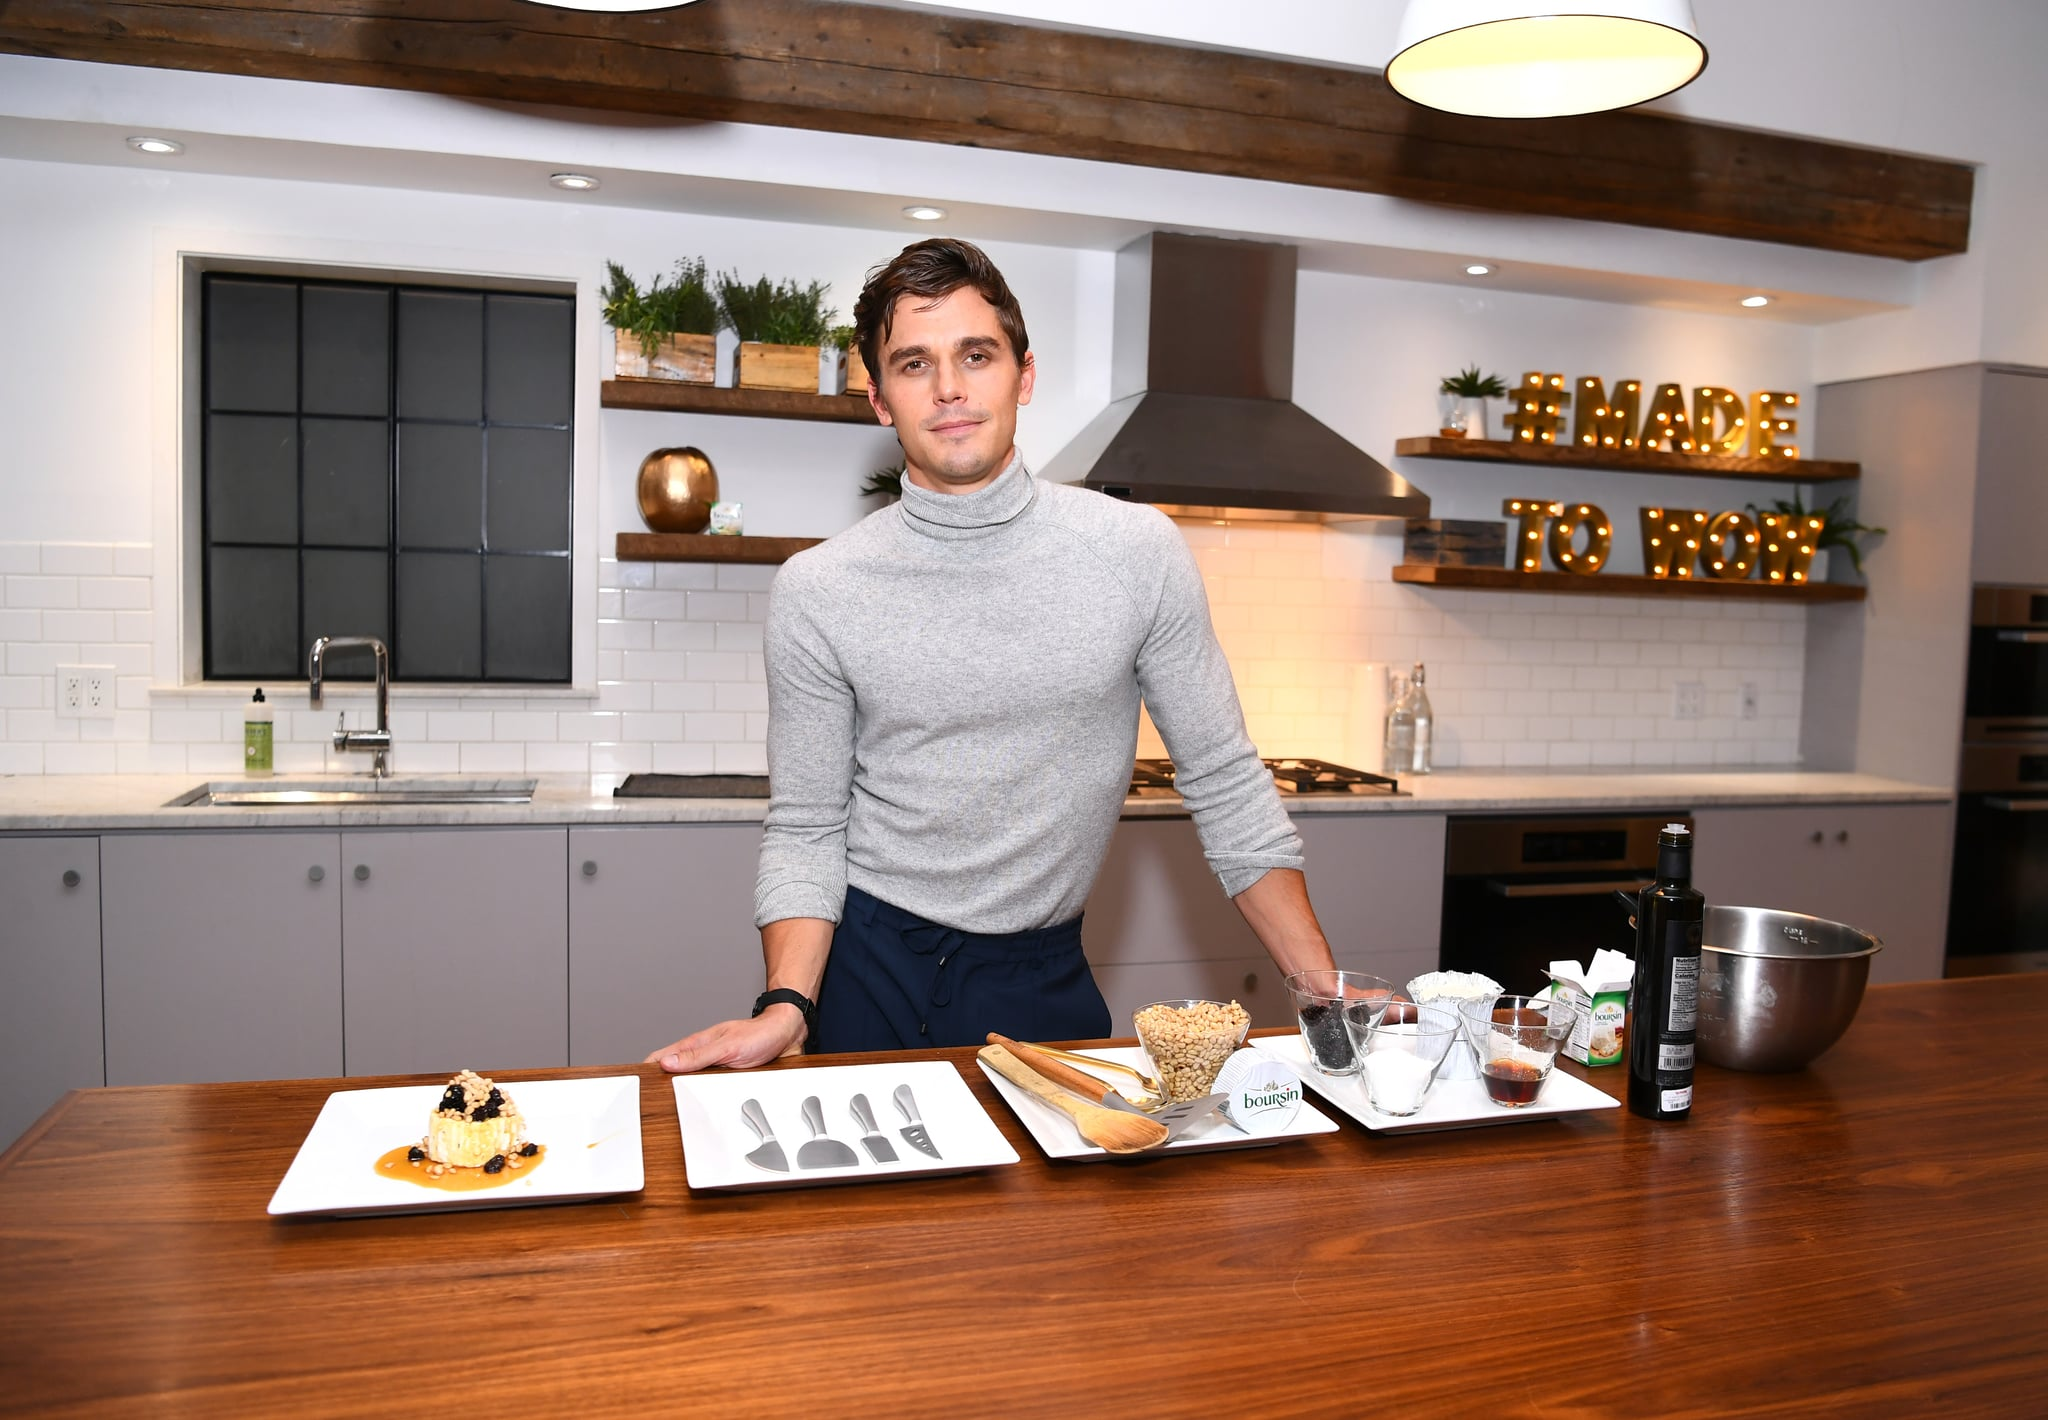 NEW YORK, NY - NOVEMBER 07:  Antoni Porowski demonstrates preparing a signature dish as he attends Boursin Friendsgiving at Home Studios on November 7, 2018 in New York City.  (Photo by Dave Kotinsky/Getty Images for Boursin Cheese)